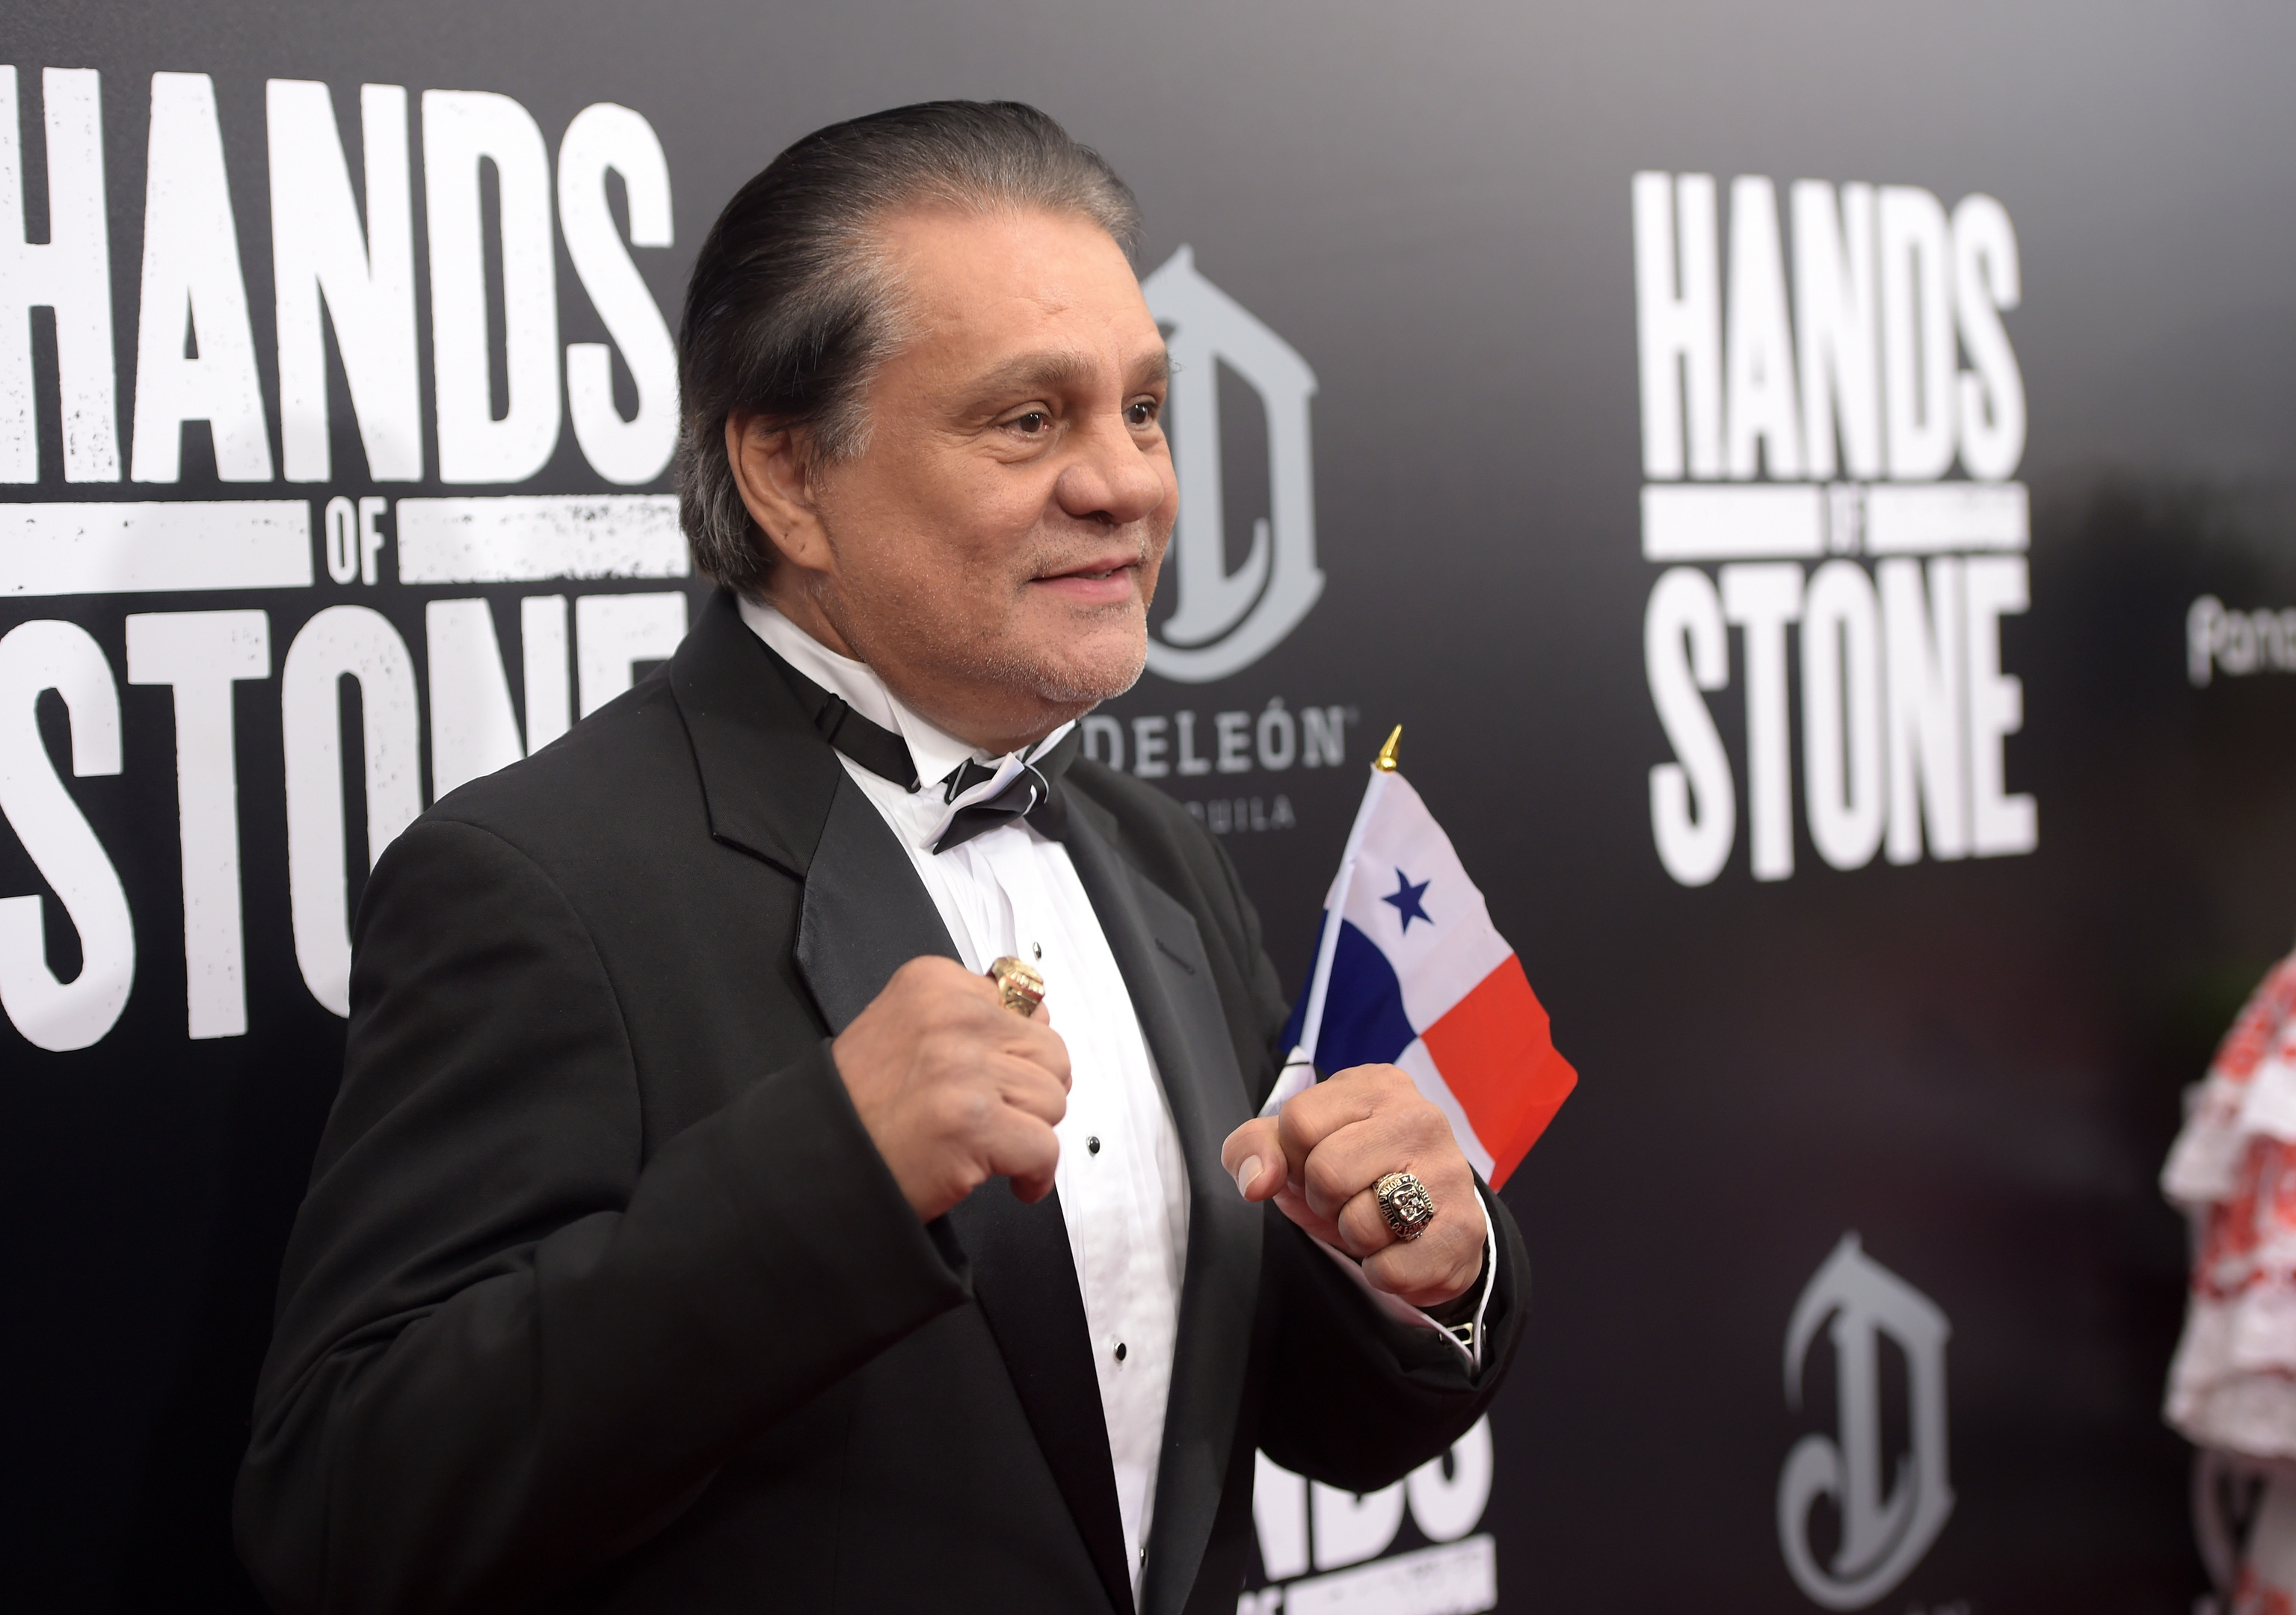 Roberto Duran, promoting his film Hands of Stone, has dismissed the credibility of a fight between Conor McGregor and Floyd Mayweather.